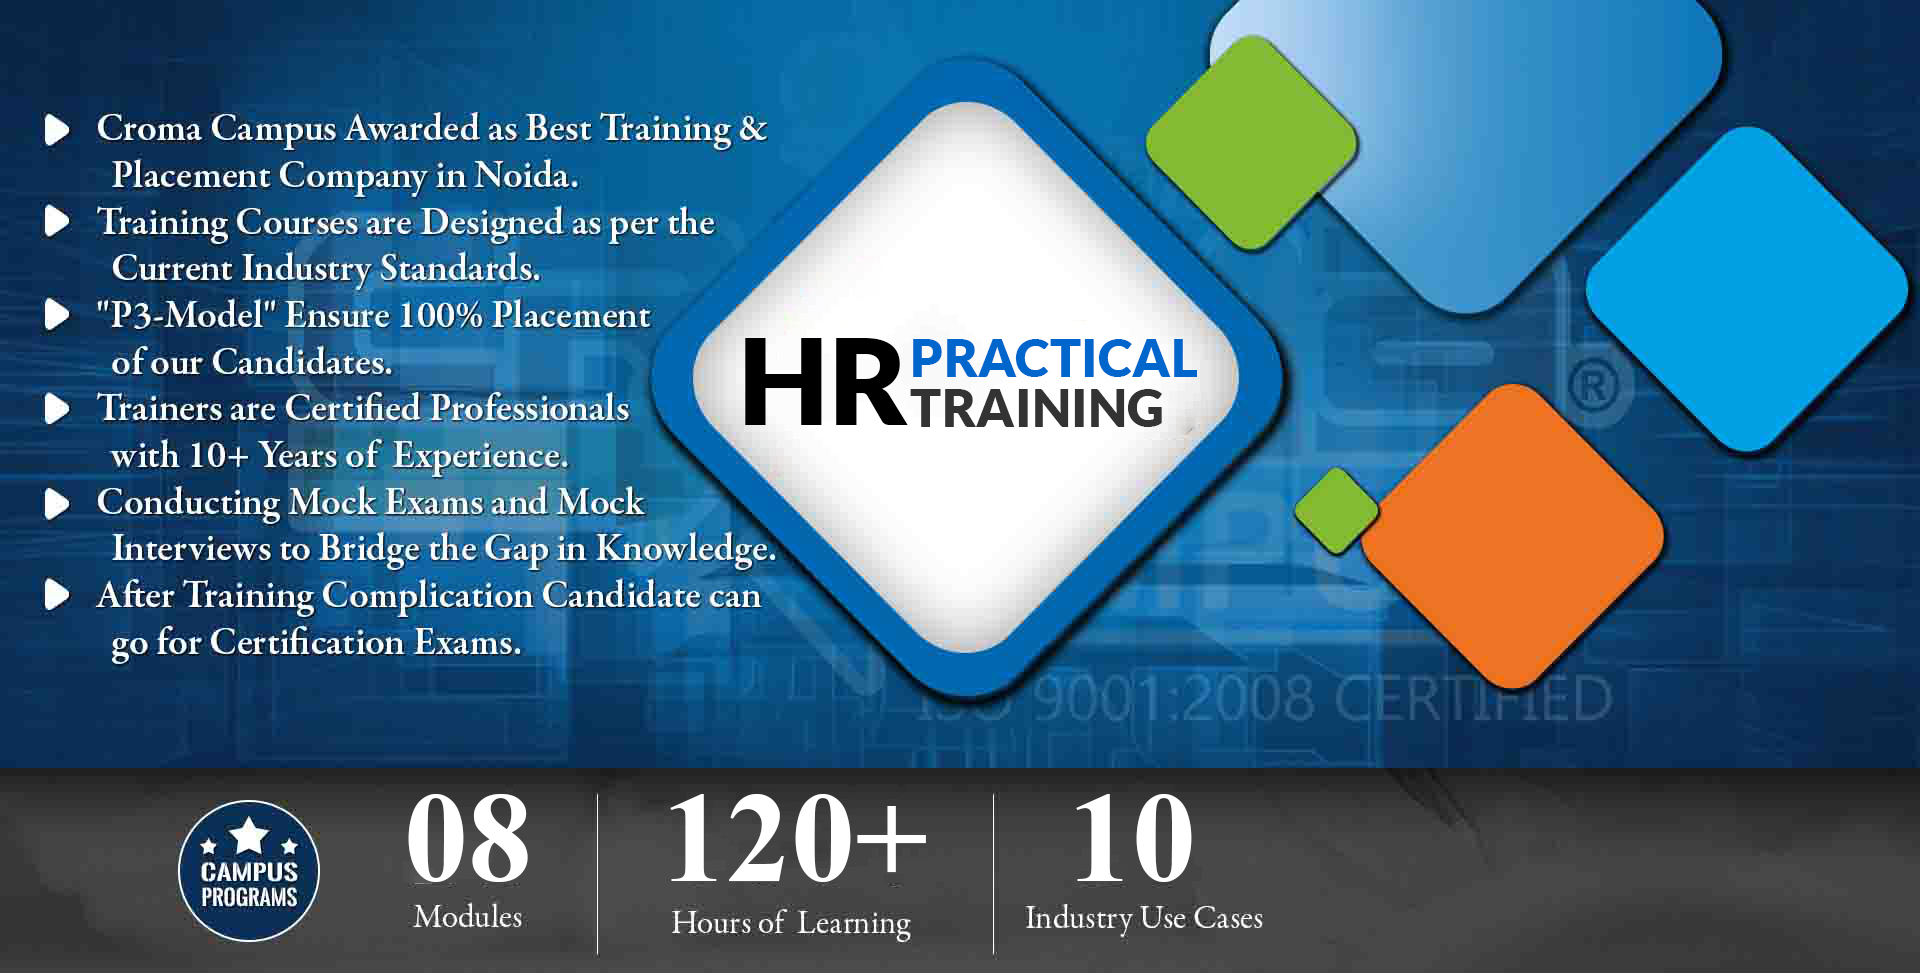 HR PRACTICAL TRAINING INSTITUTE IN NOIDA